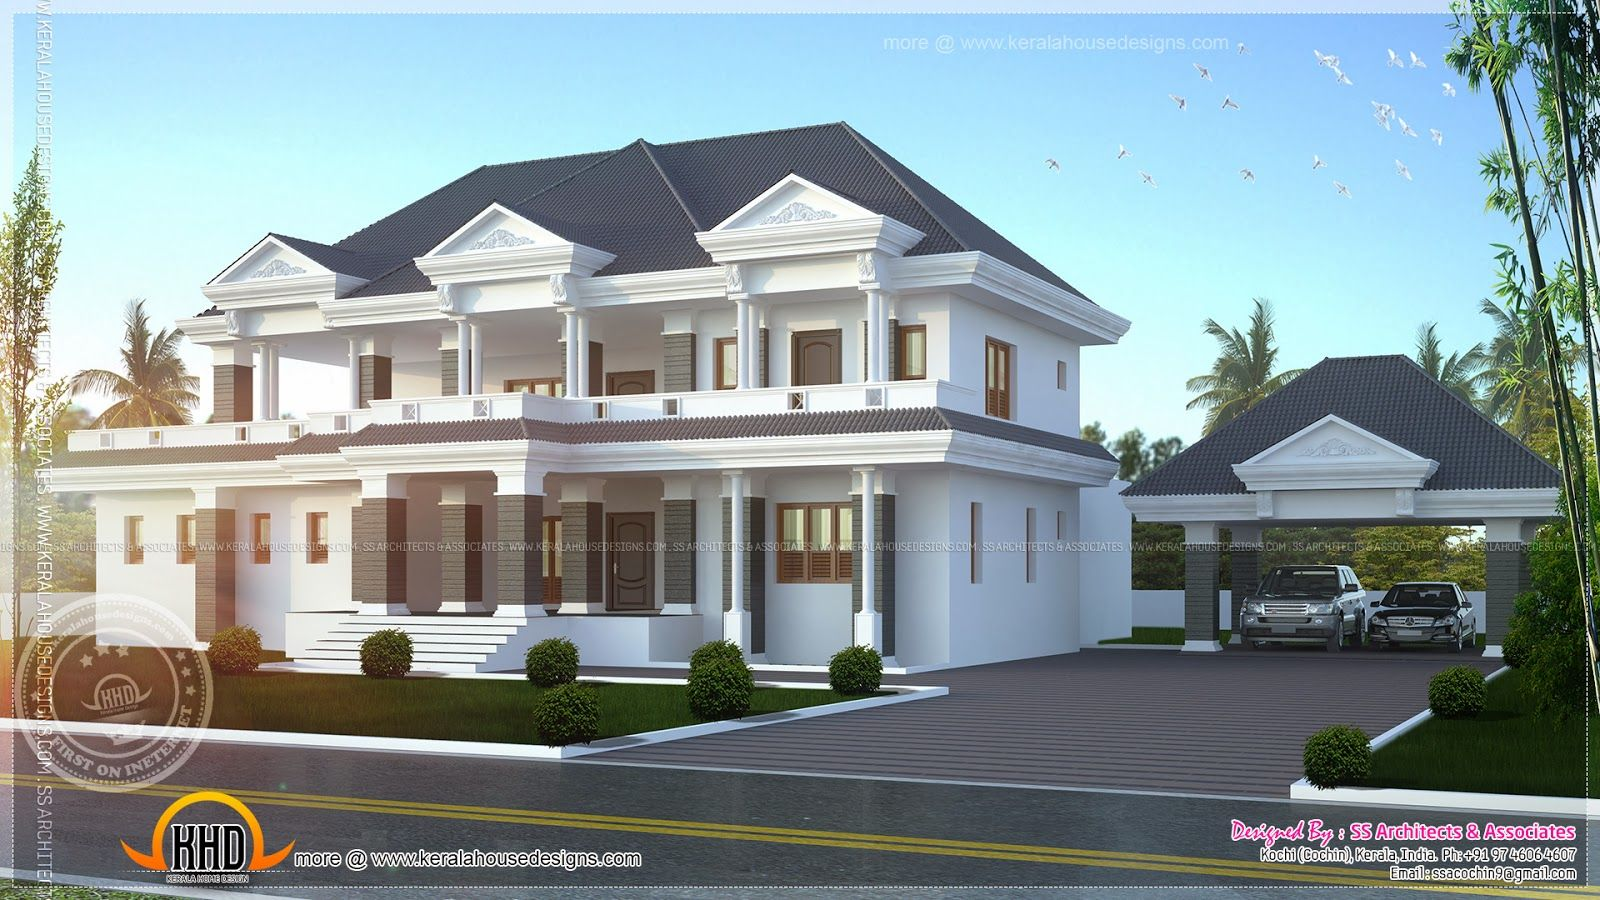 Luxury house plans posh luxury home plan audisb luxury Luxury estate house plans